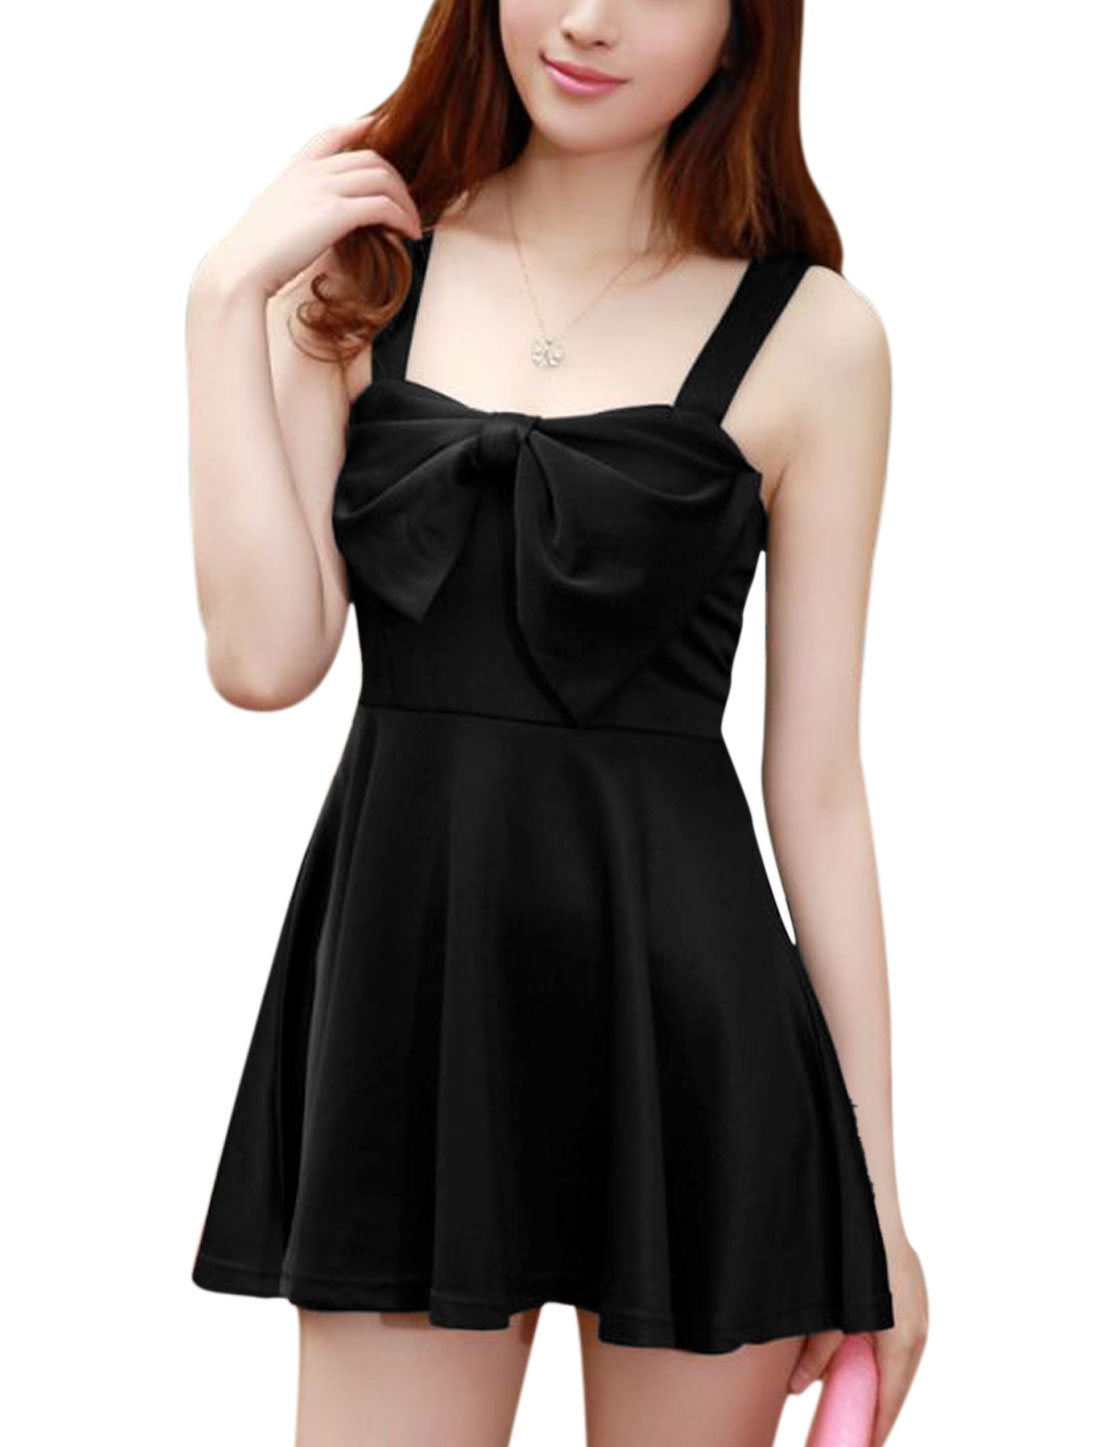 Women Shoulder Straps Bowknot Accent Front Stretchy Sexy Dress Black XS